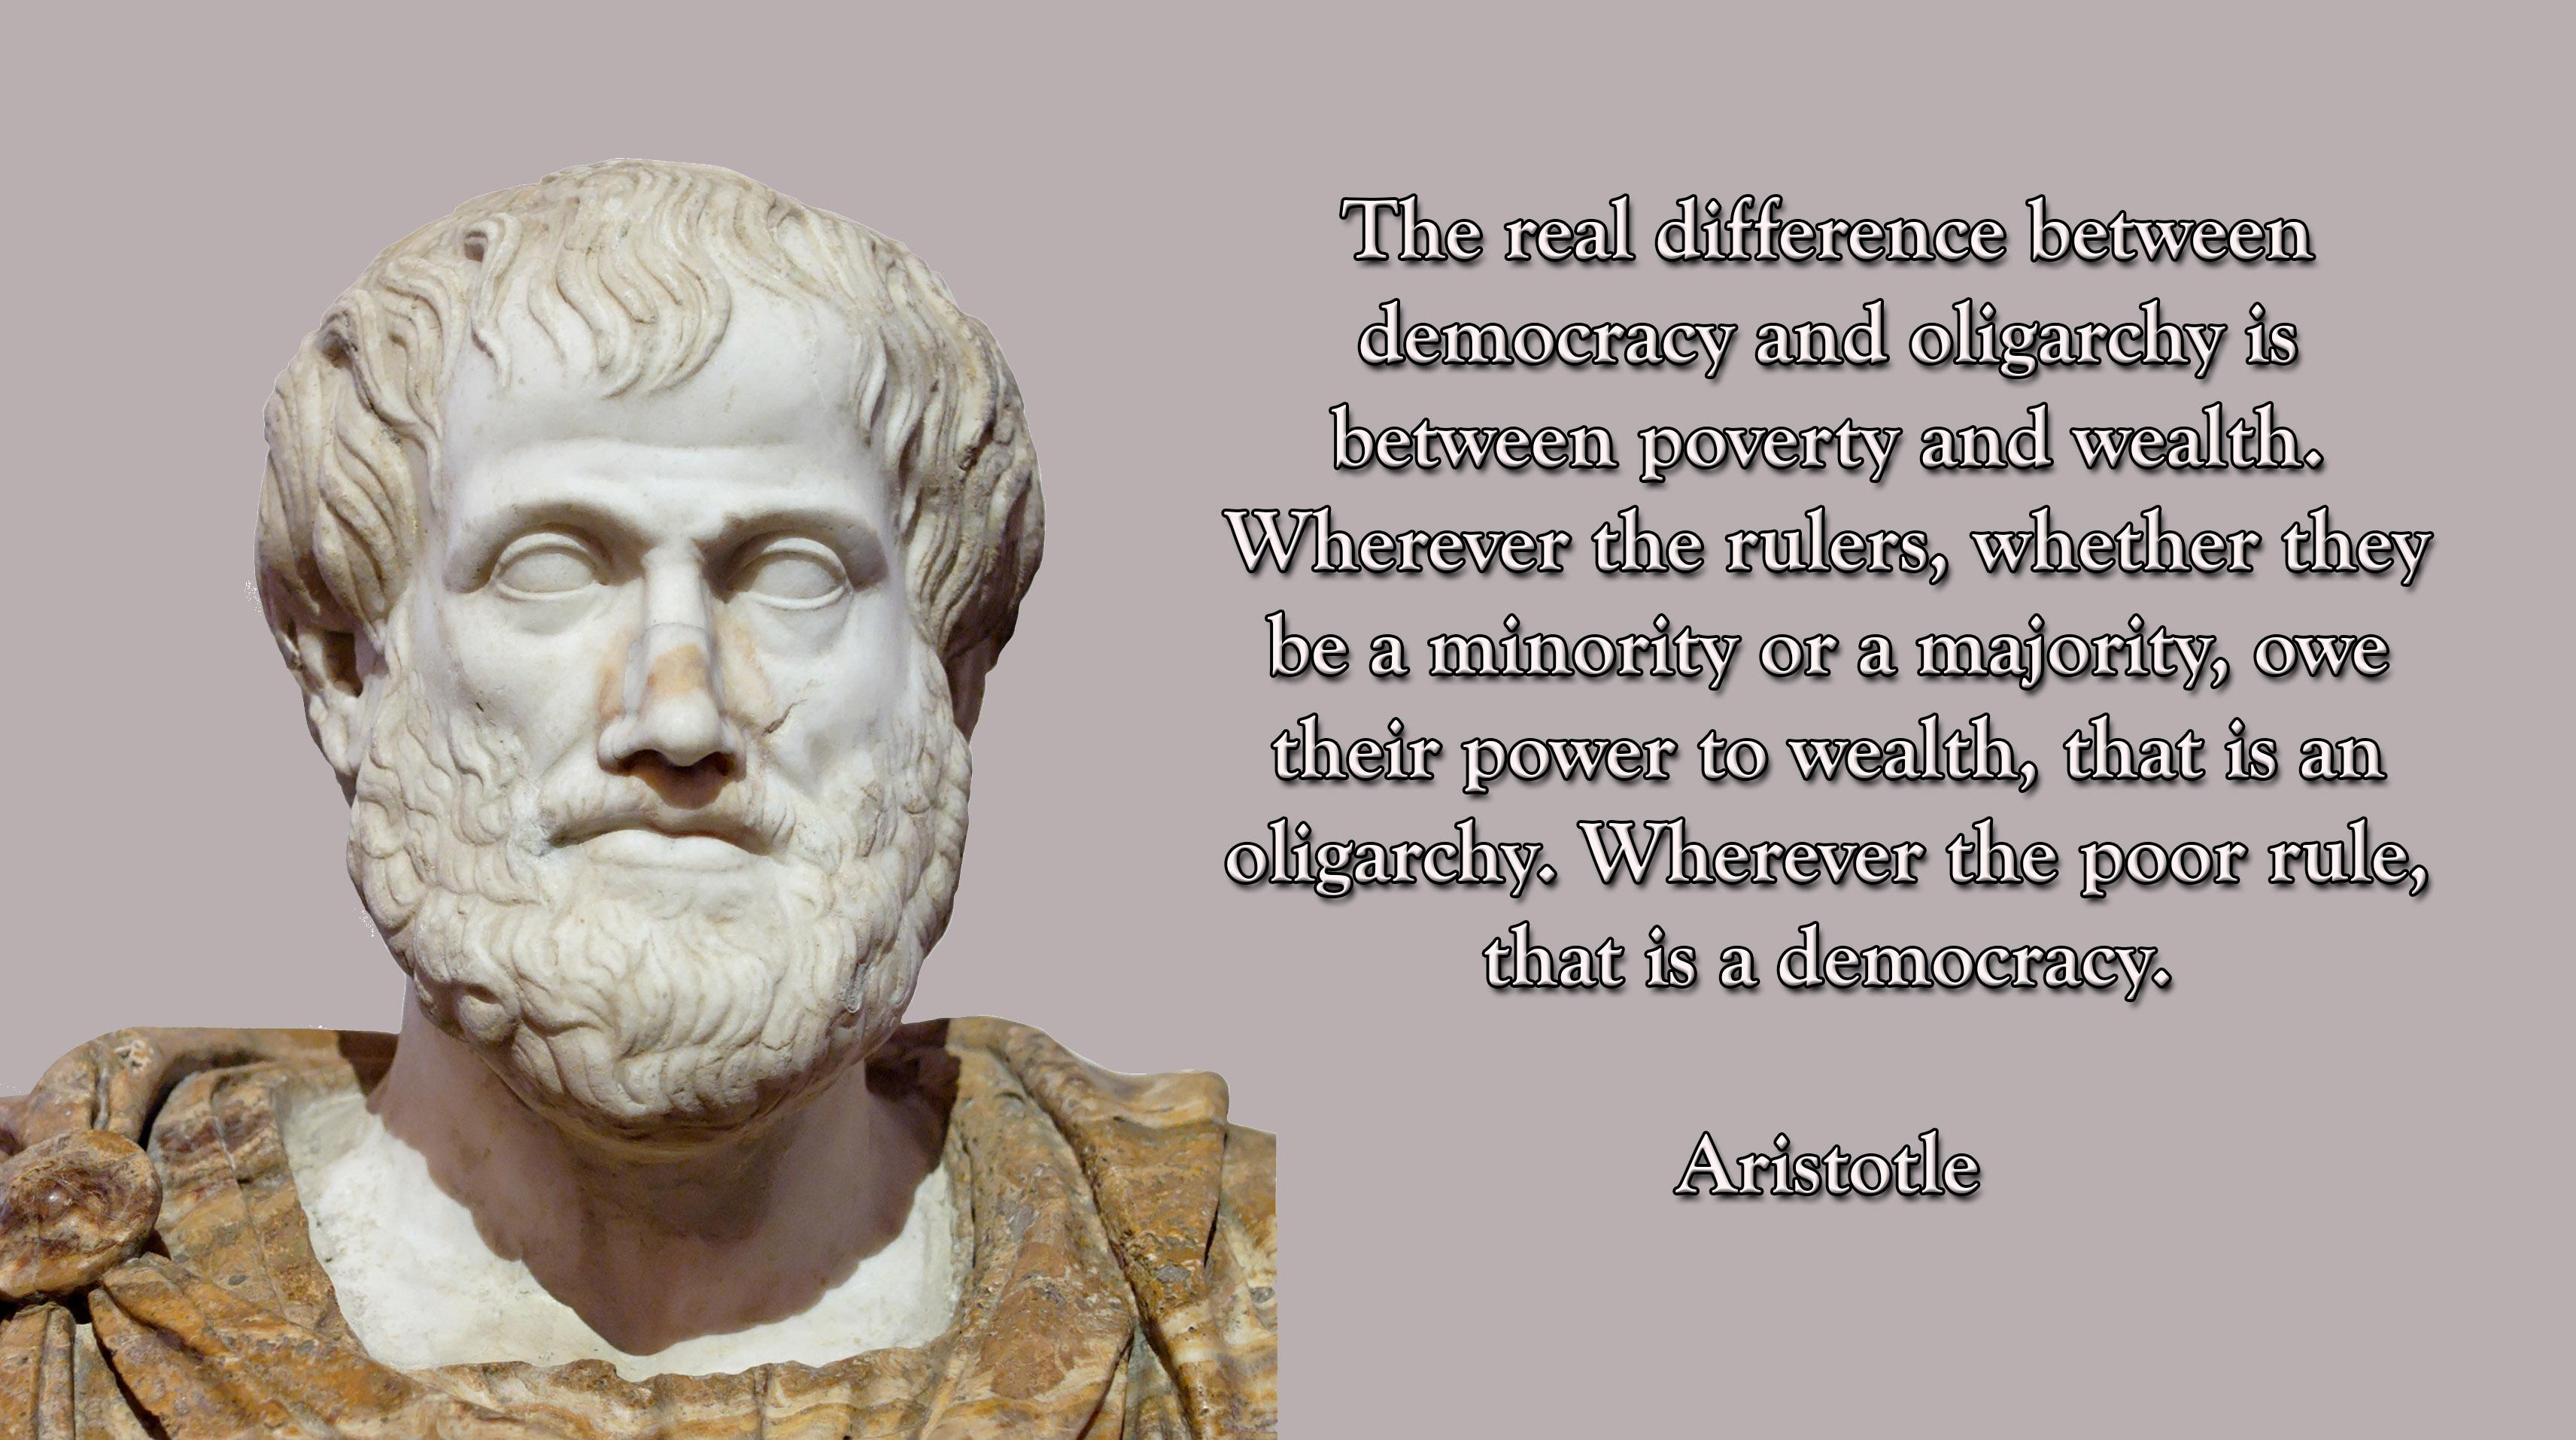 """The real difference between democracy and oligarchy is between poverty and wealth. Wherever the rulers, whether they be a minority or a majority, owe their power to wealth, that is an oligarchy. Wherever the poor rule, that is a democracy."" – Aristotle [OC][3424 × 1914]"